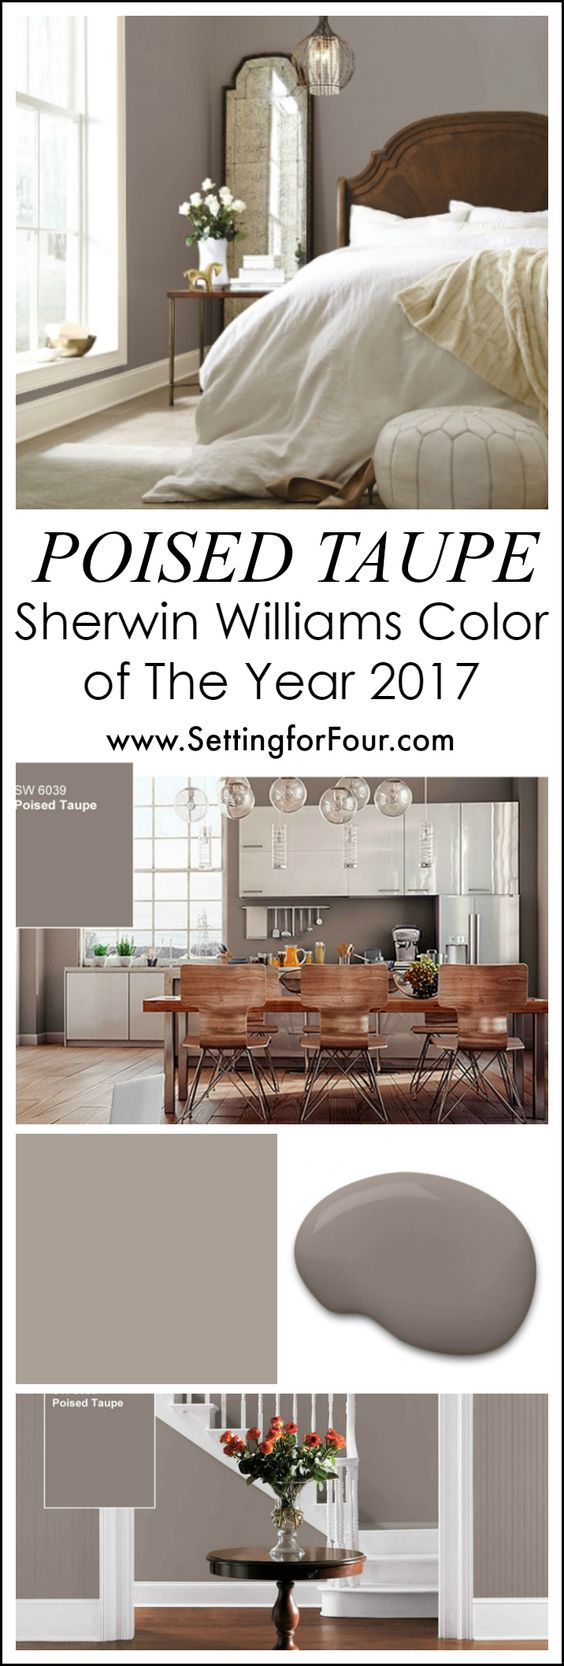 sherwin williams poised taupe color of the year 2017 benjamin moore sherwin williams comfort. Black Bedroom Furniture Sets. Home Design Ideas